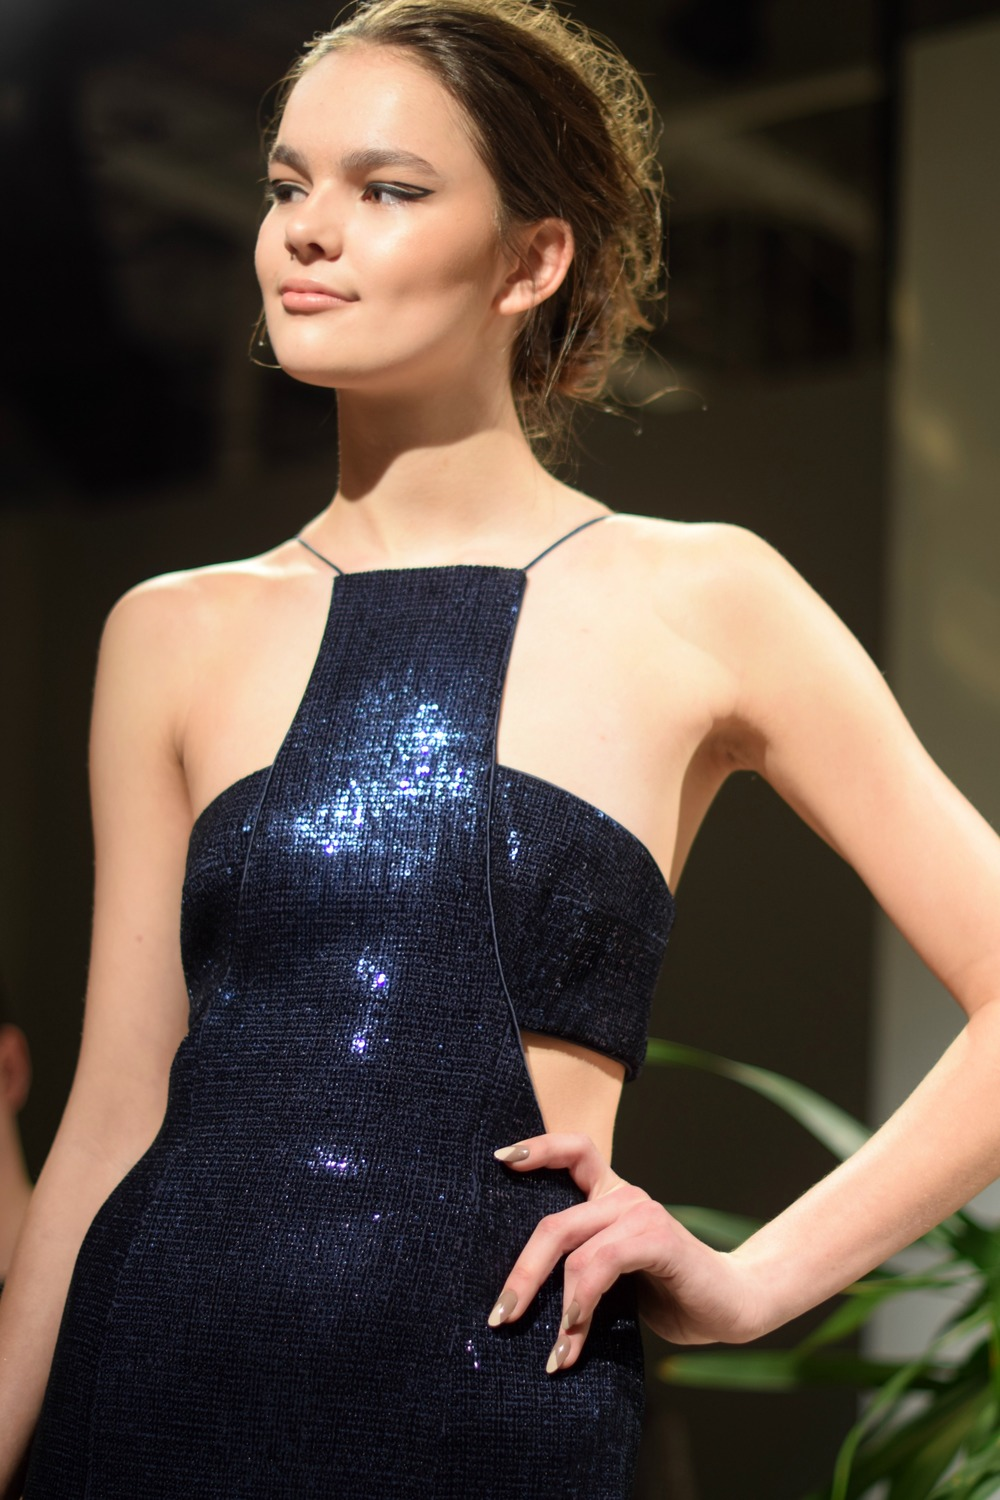 NYFW Jay Godfrey Fashion Presentation Fall:Winter 2016 Louboutins & Love Fashion Blog Esther Santer NYC Street Style Runway Models Collection Press Coverage Photos Details Dress Gown Beautiful Gorgeous Stunning Pretty Shop New York City Celebrities 1.jpg